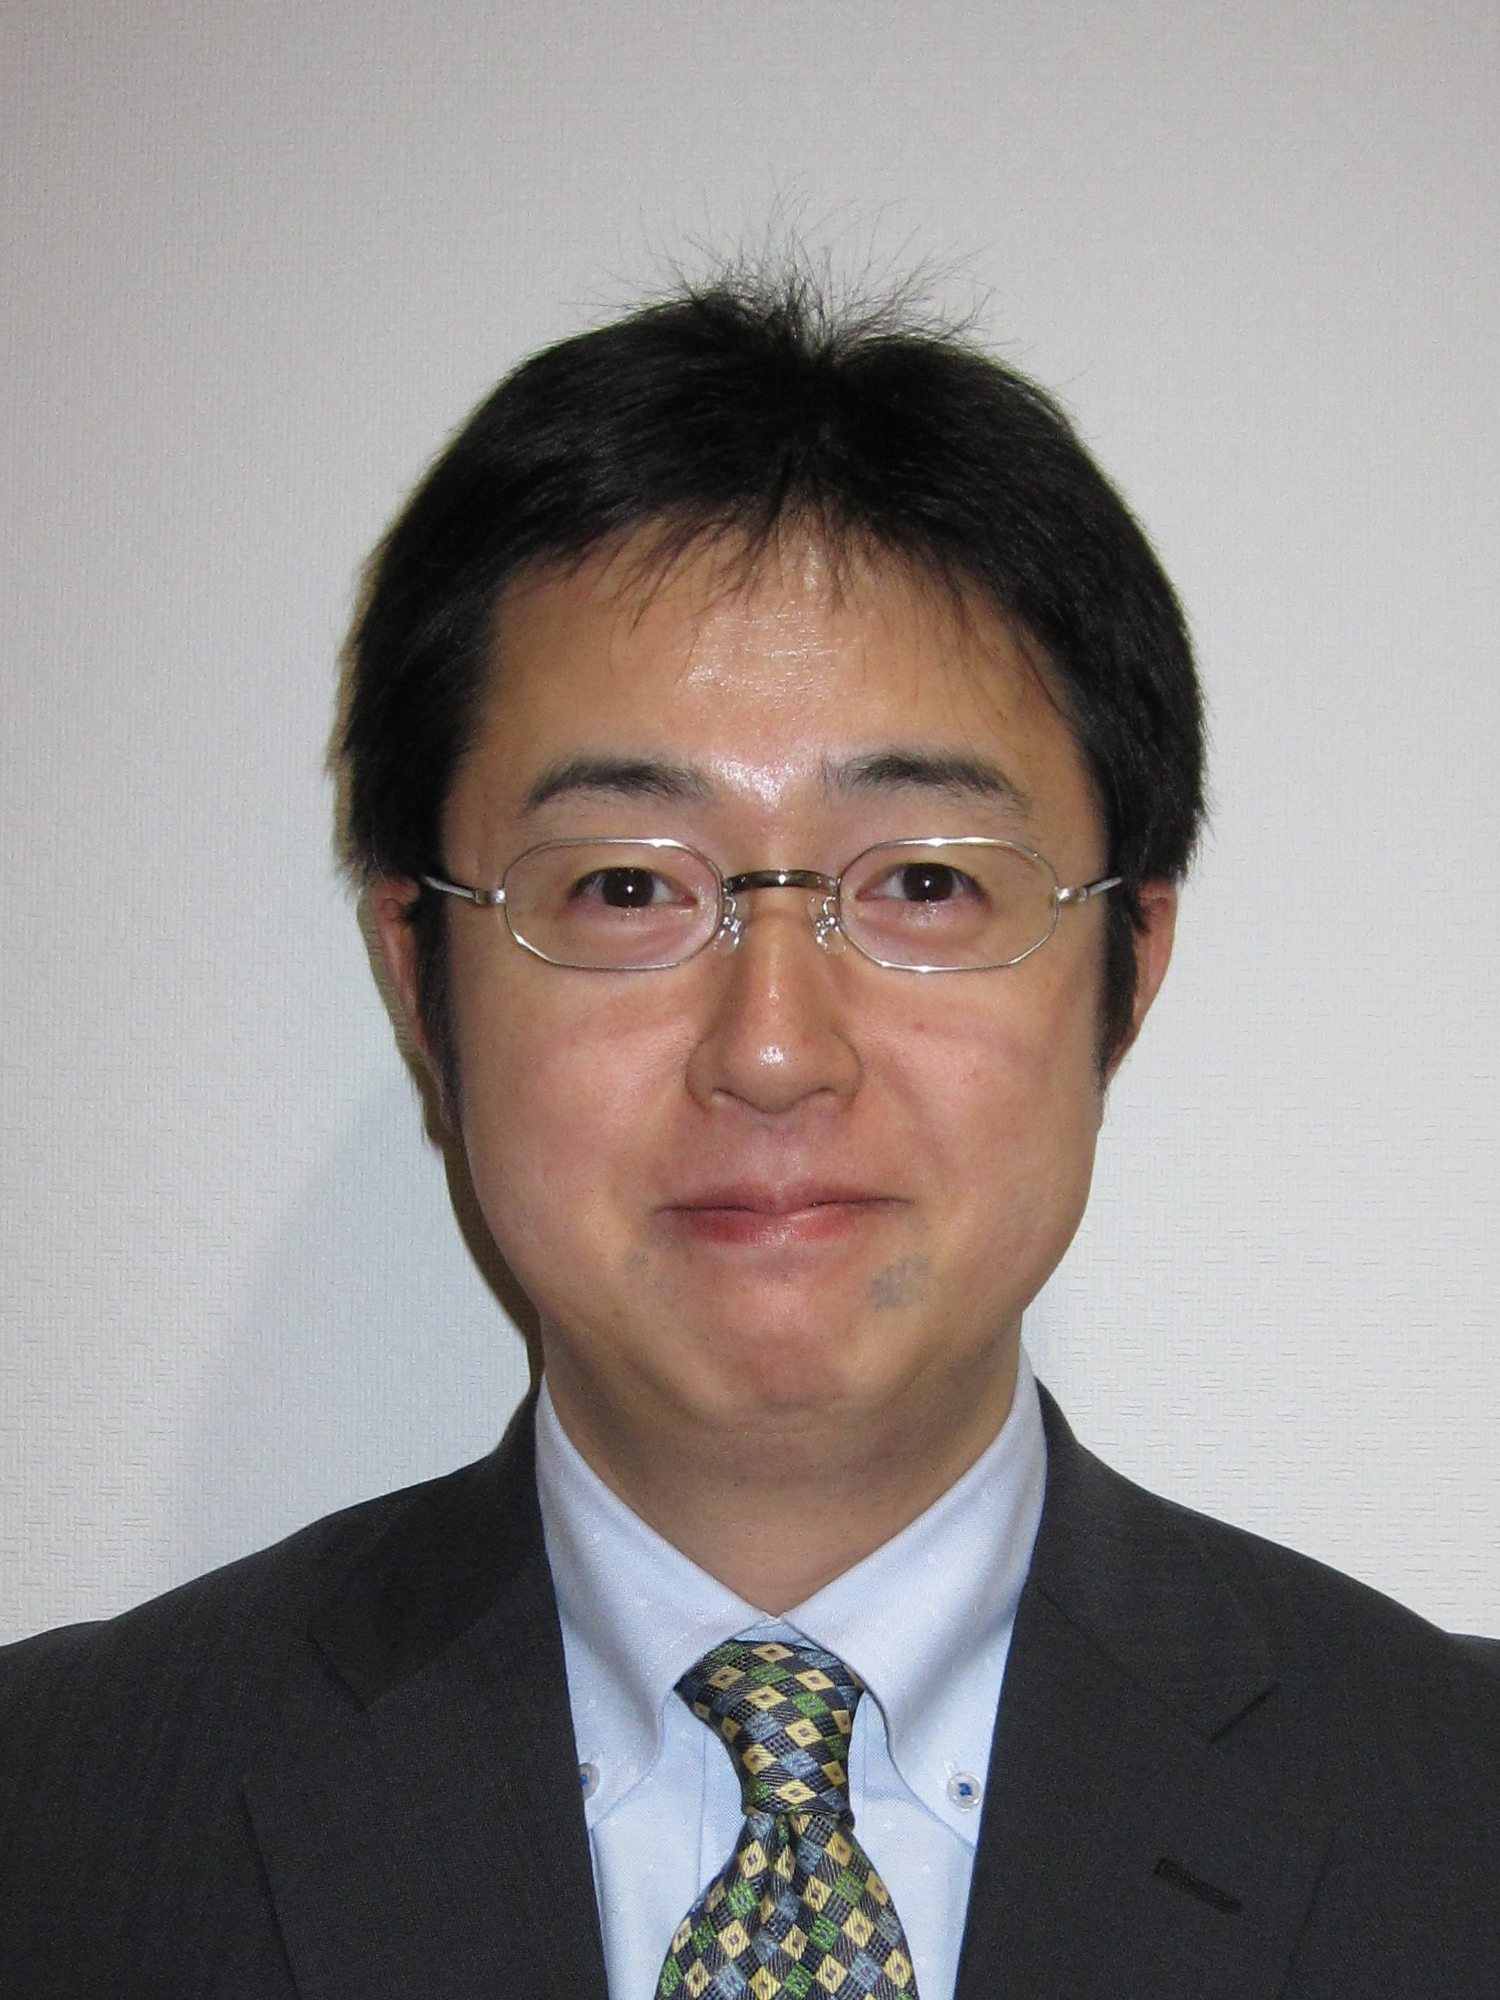 Photo of Shinichiro Kanoh